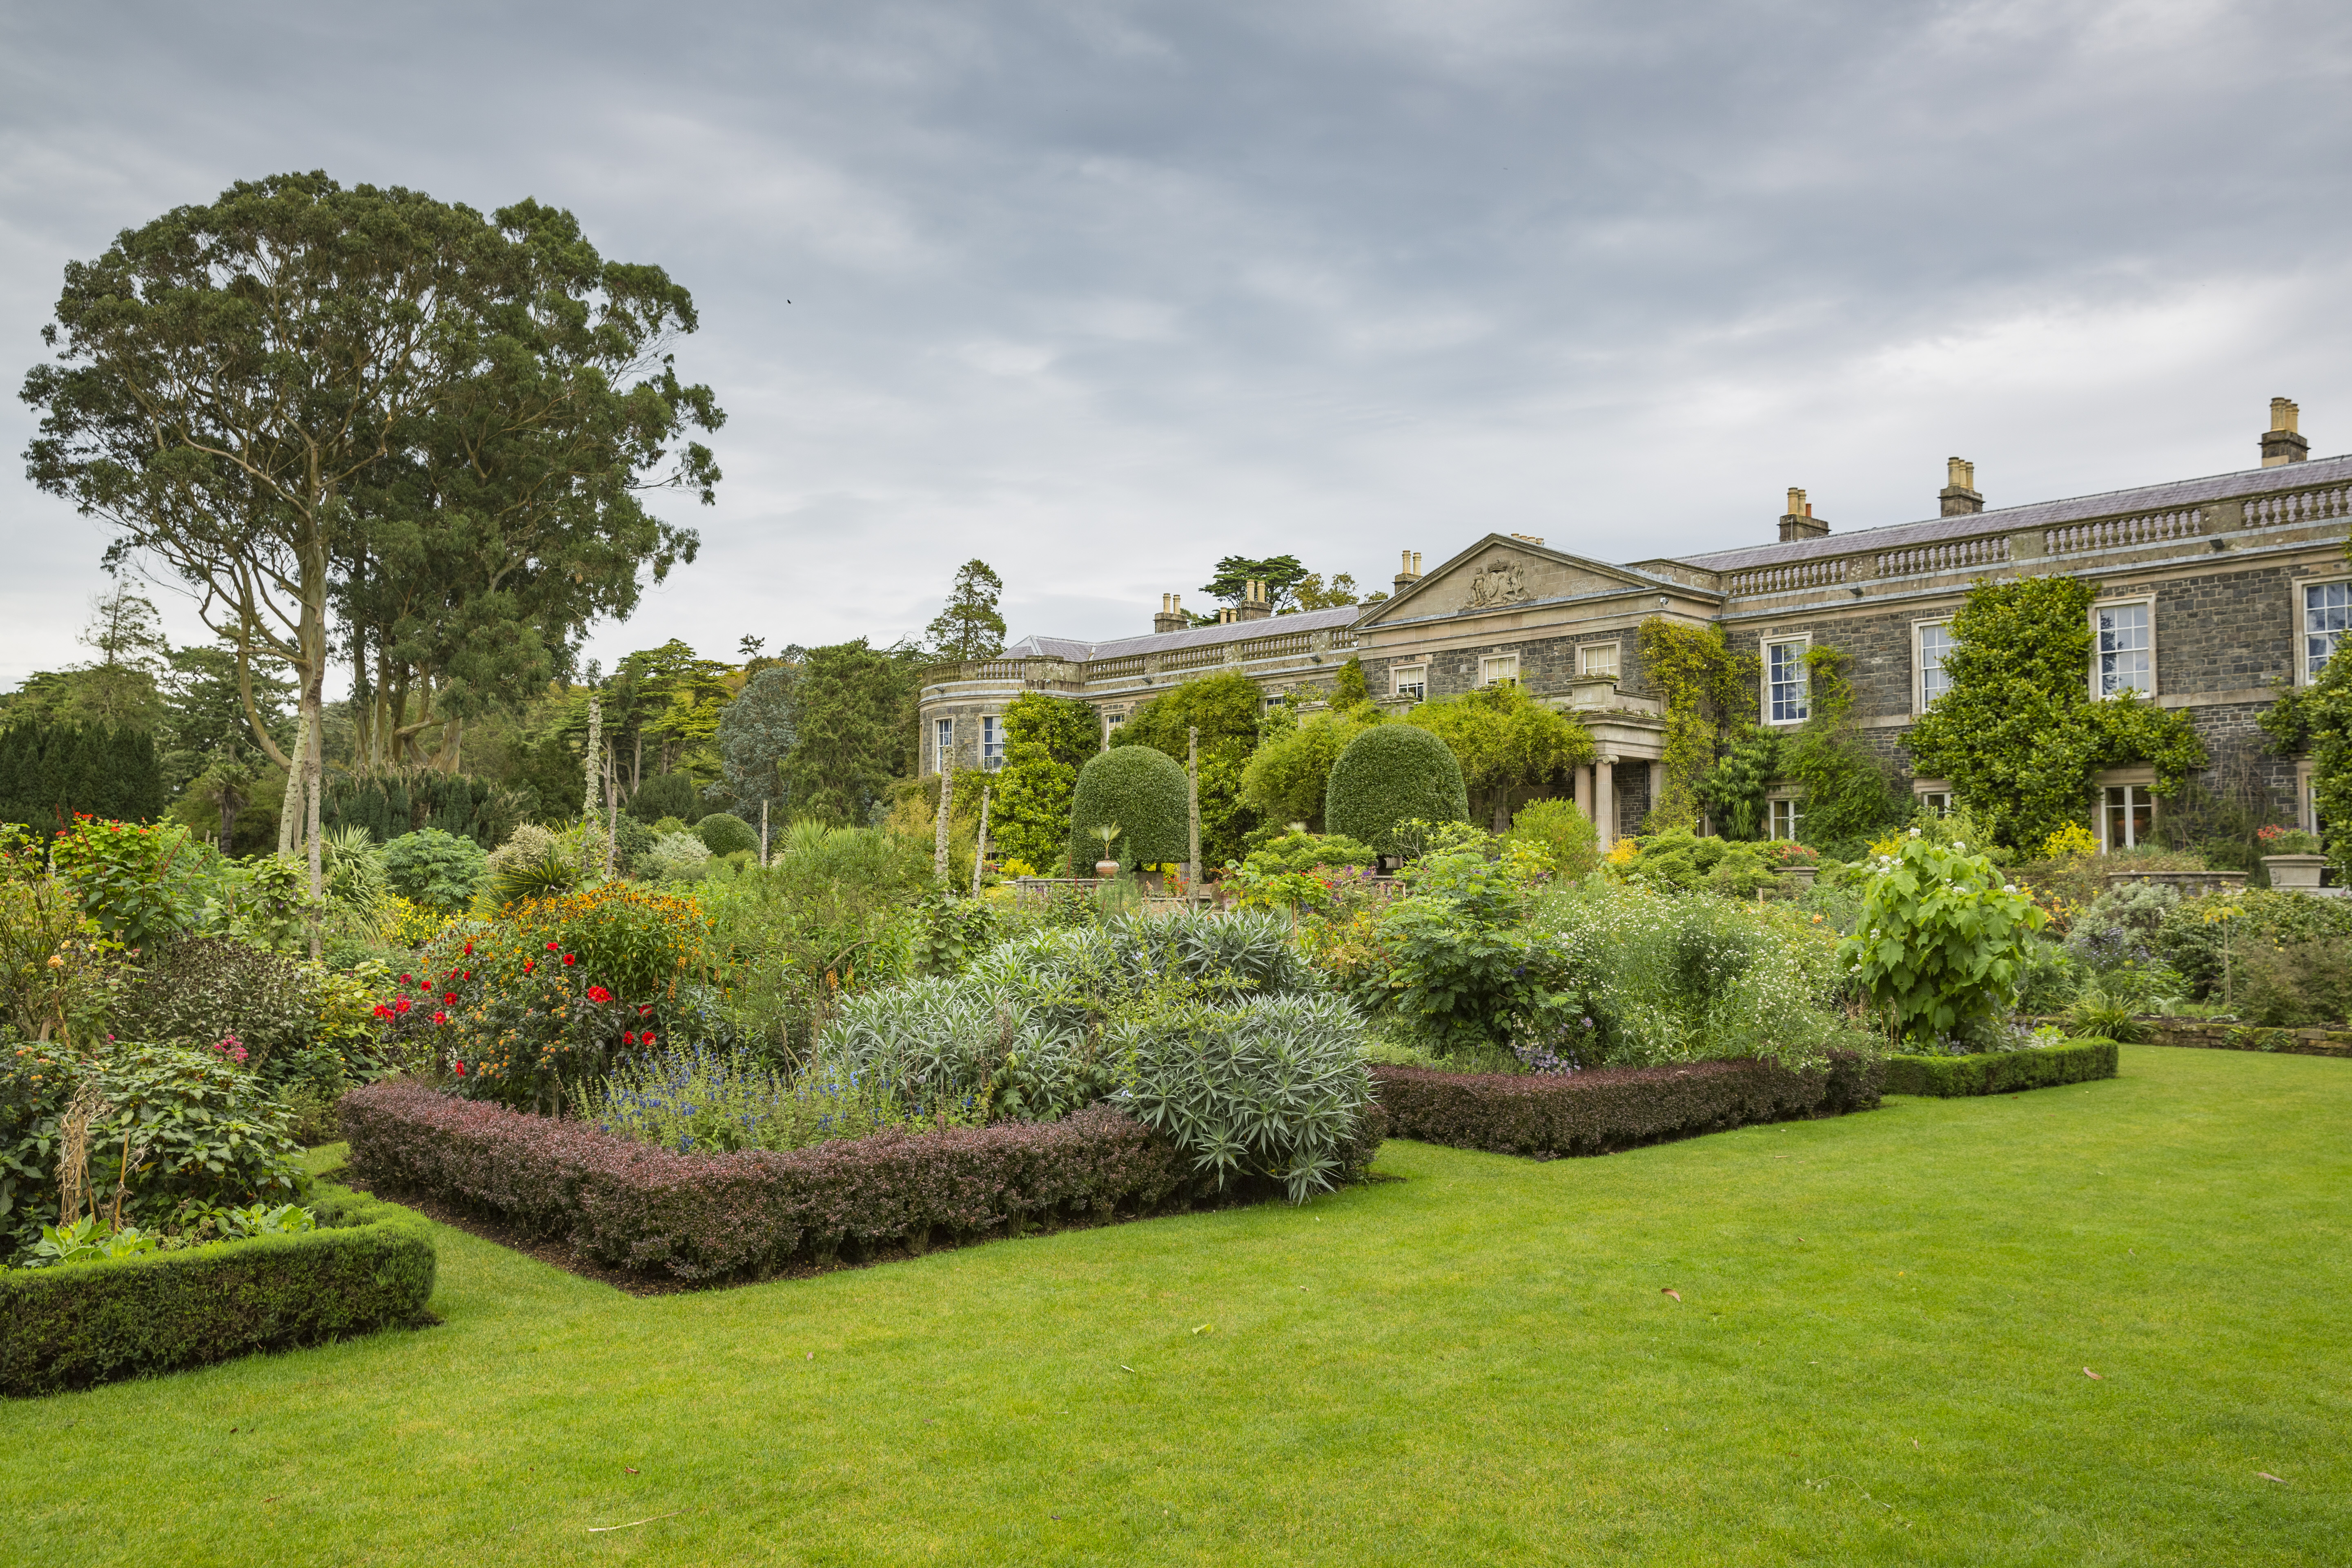 The Formal Garden at Mount Stewart, County Down is one of the hundreds of properties the National Trust cares for (National Trust Images/James Dobson/PA)